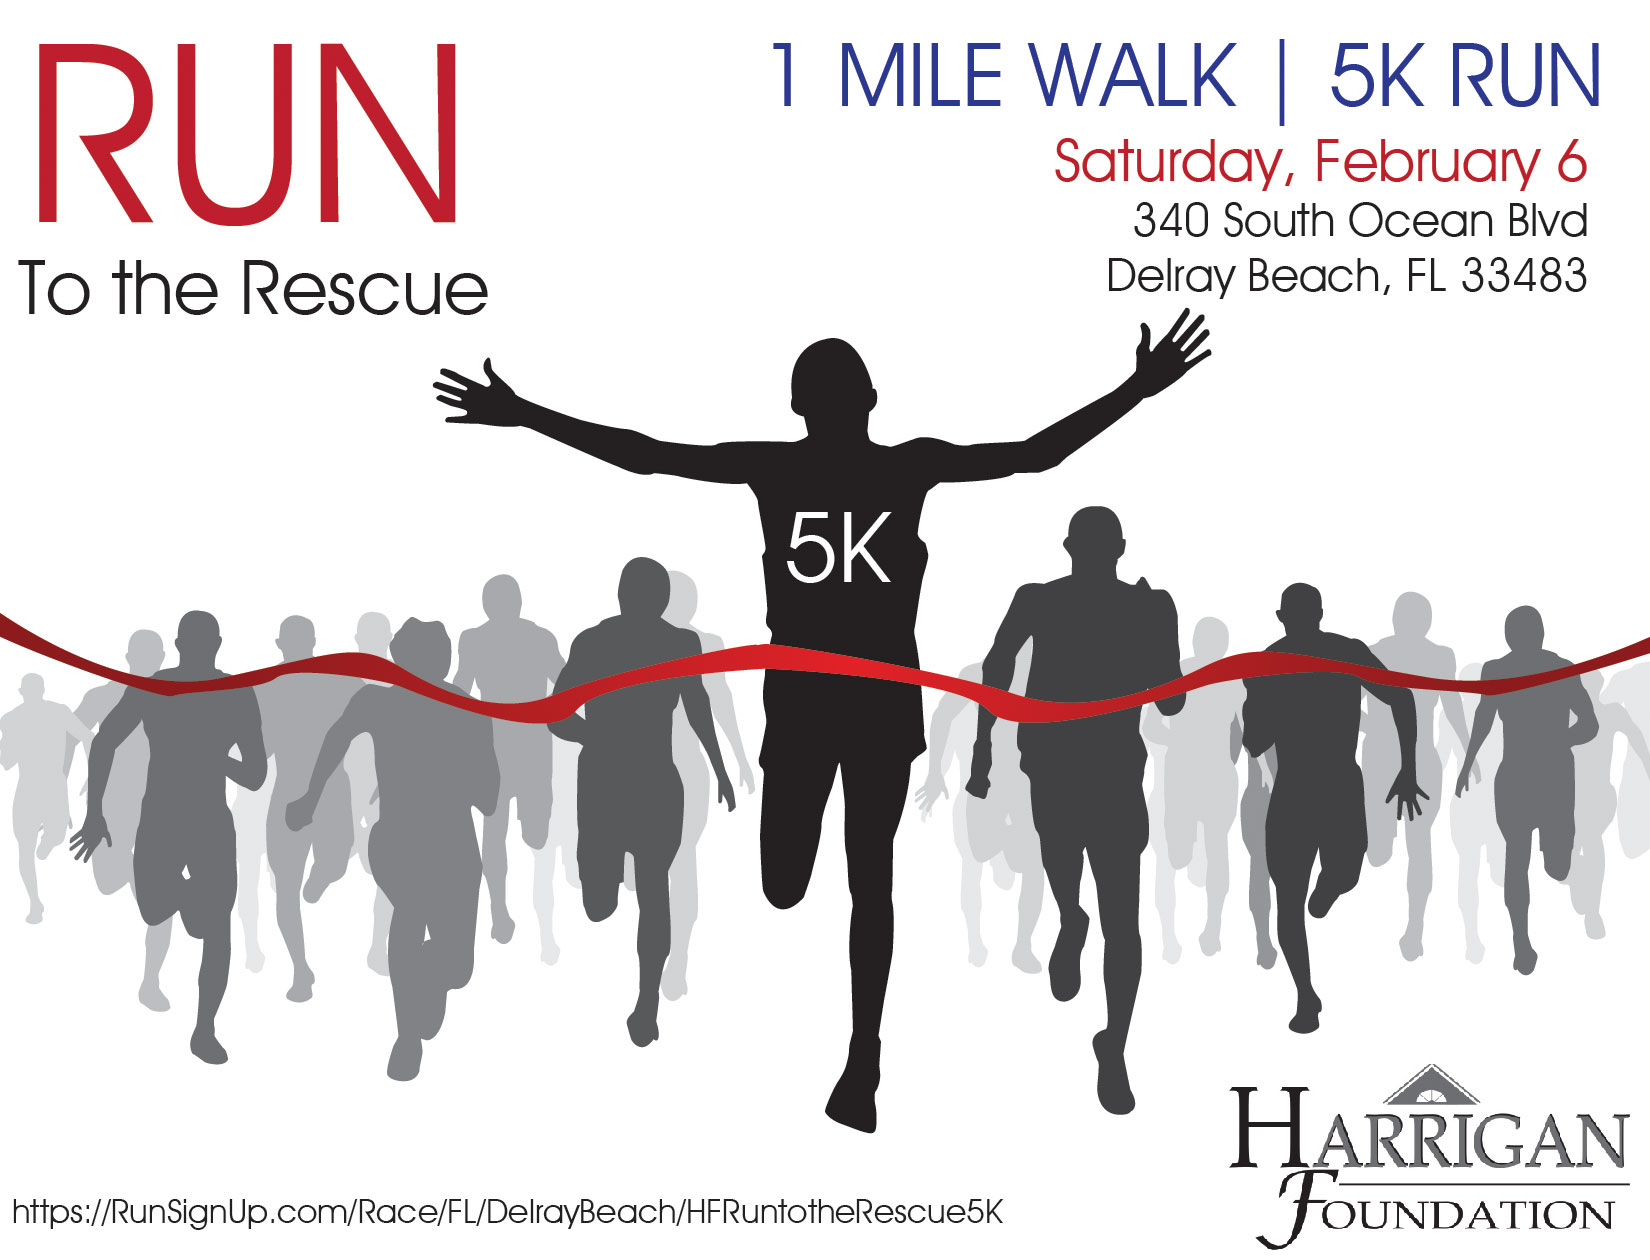 Run to the Rescue 5K/1 Mile Walk for First Responders Fighting Addiction